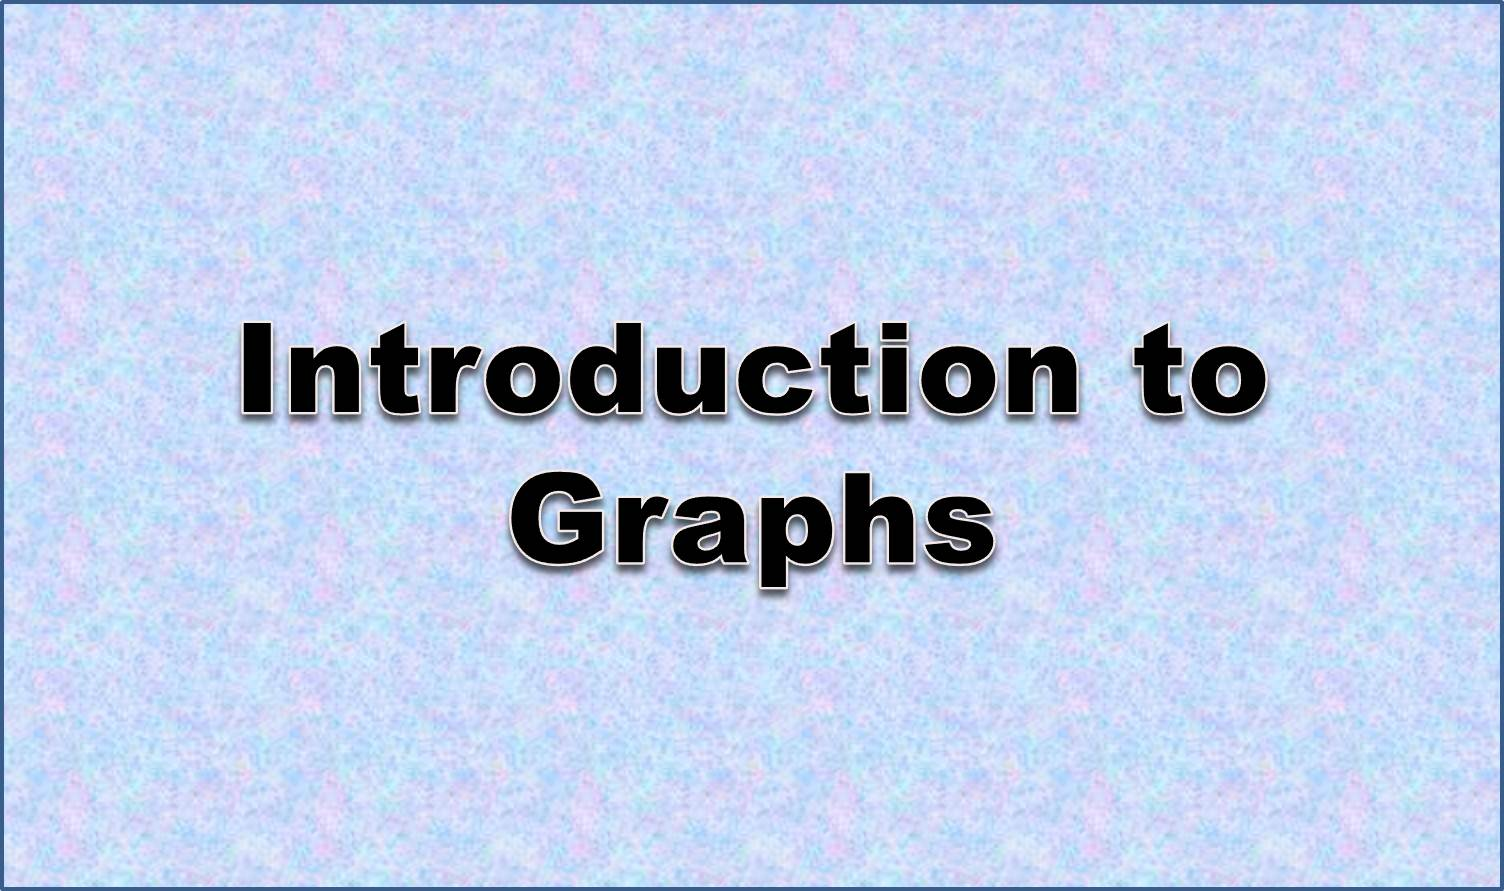 http://study.aisectonline.com/images/Reading pie graphs.jpg